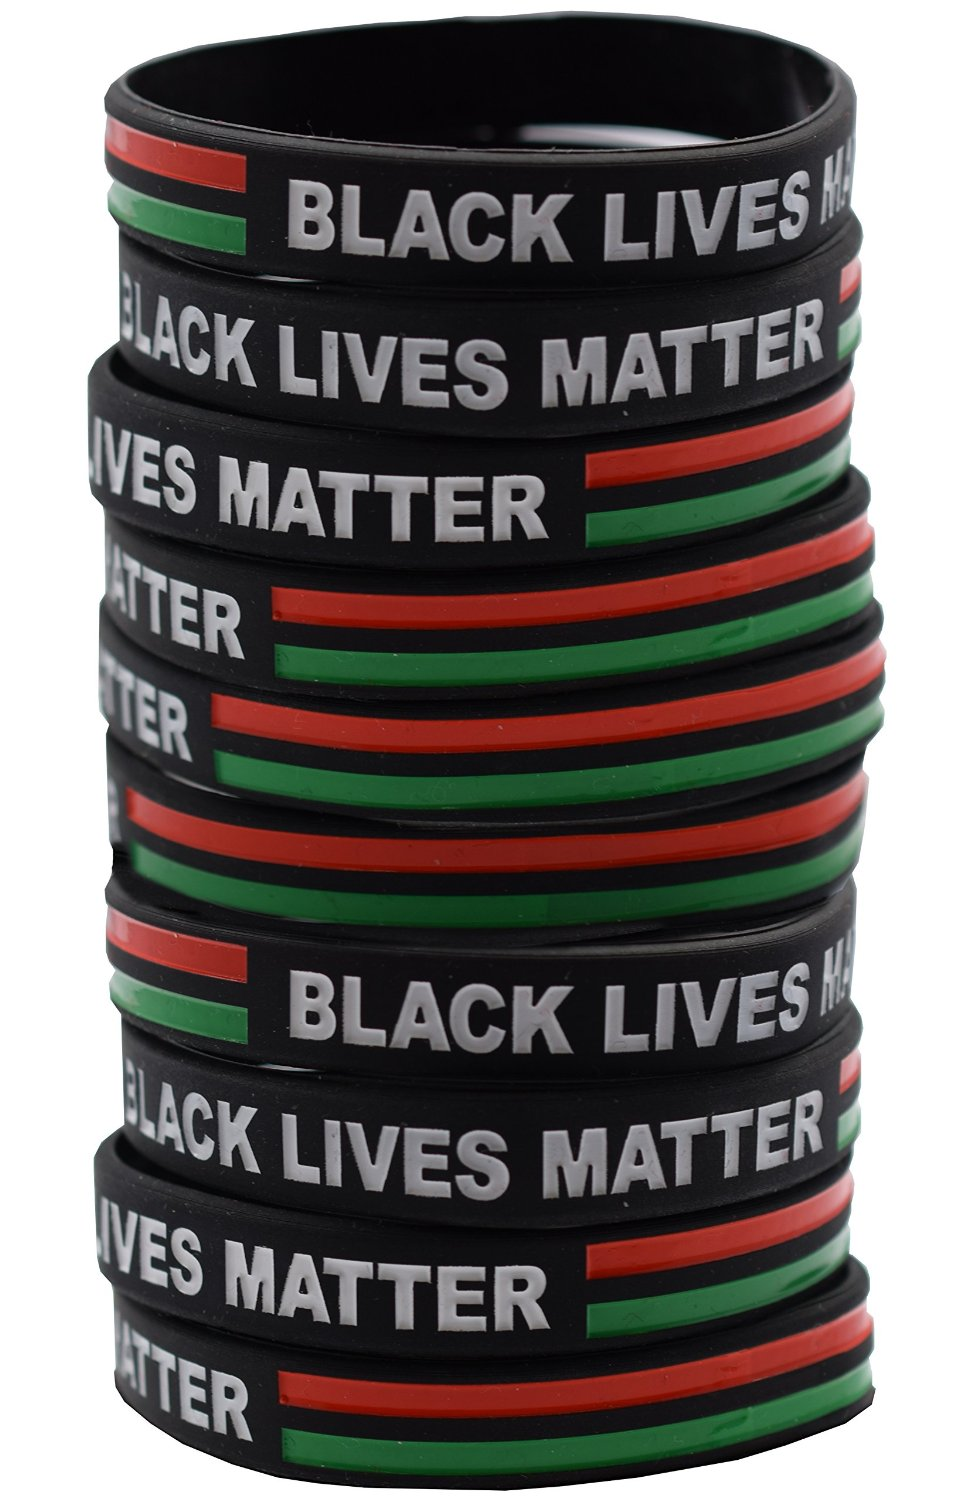 3 Pack of Black Lives Matter Bracelet - African American Colors Red, Black and Green